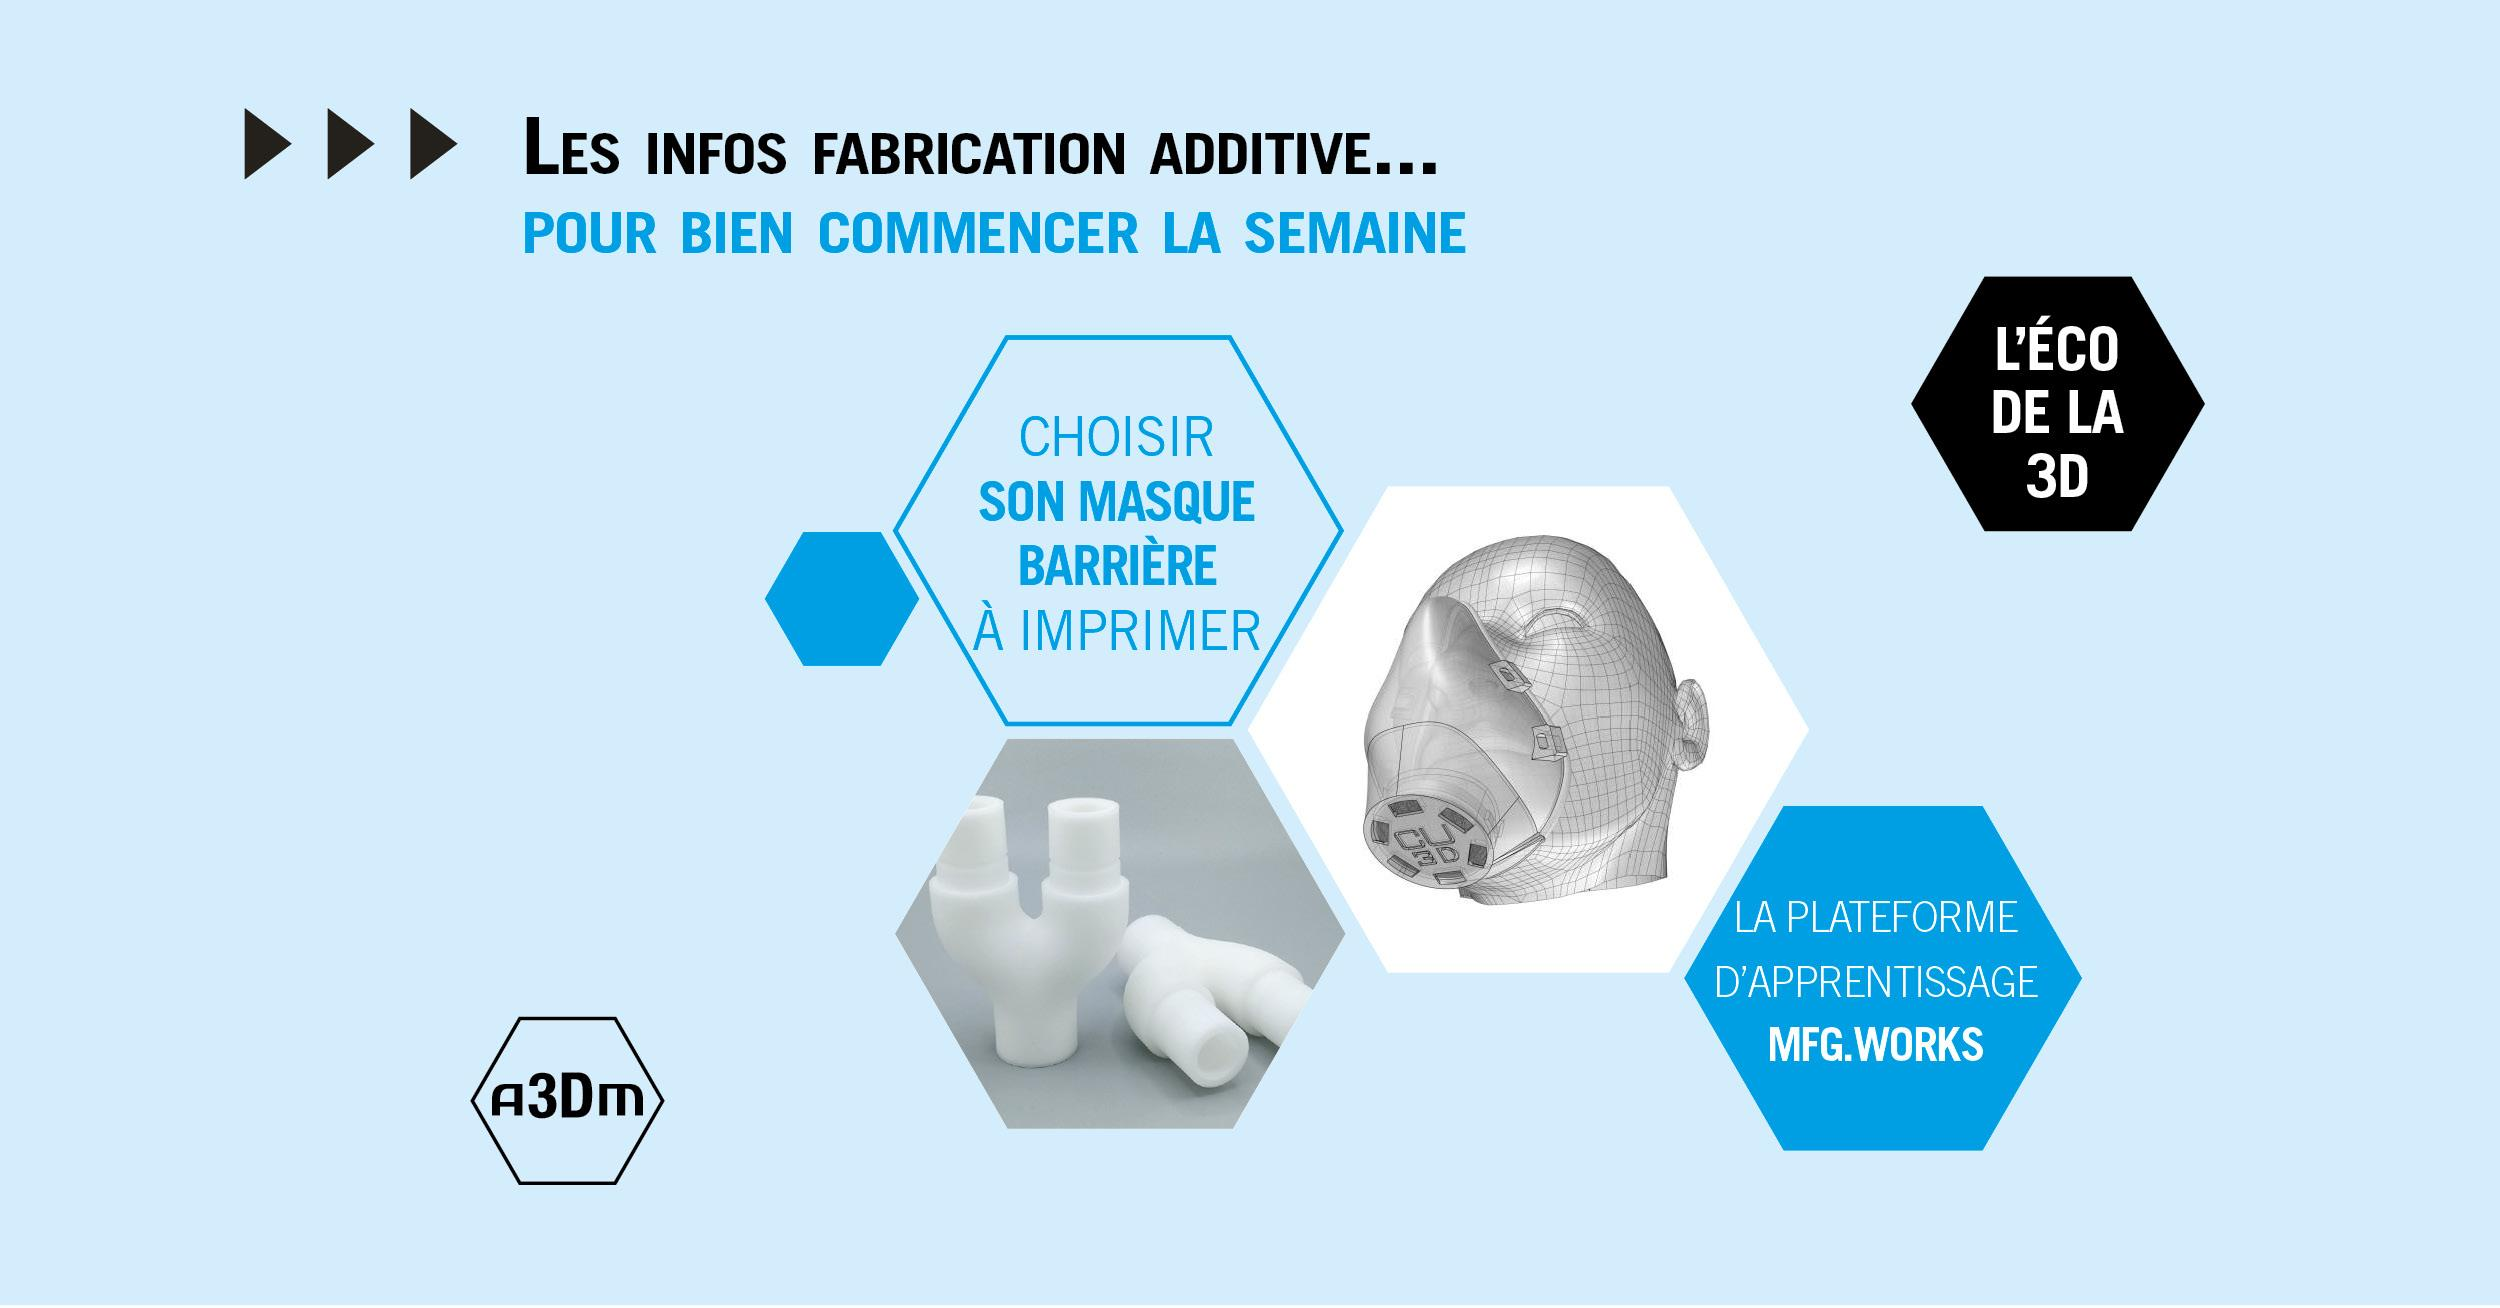 infos_fabrication_additive_semaine_42